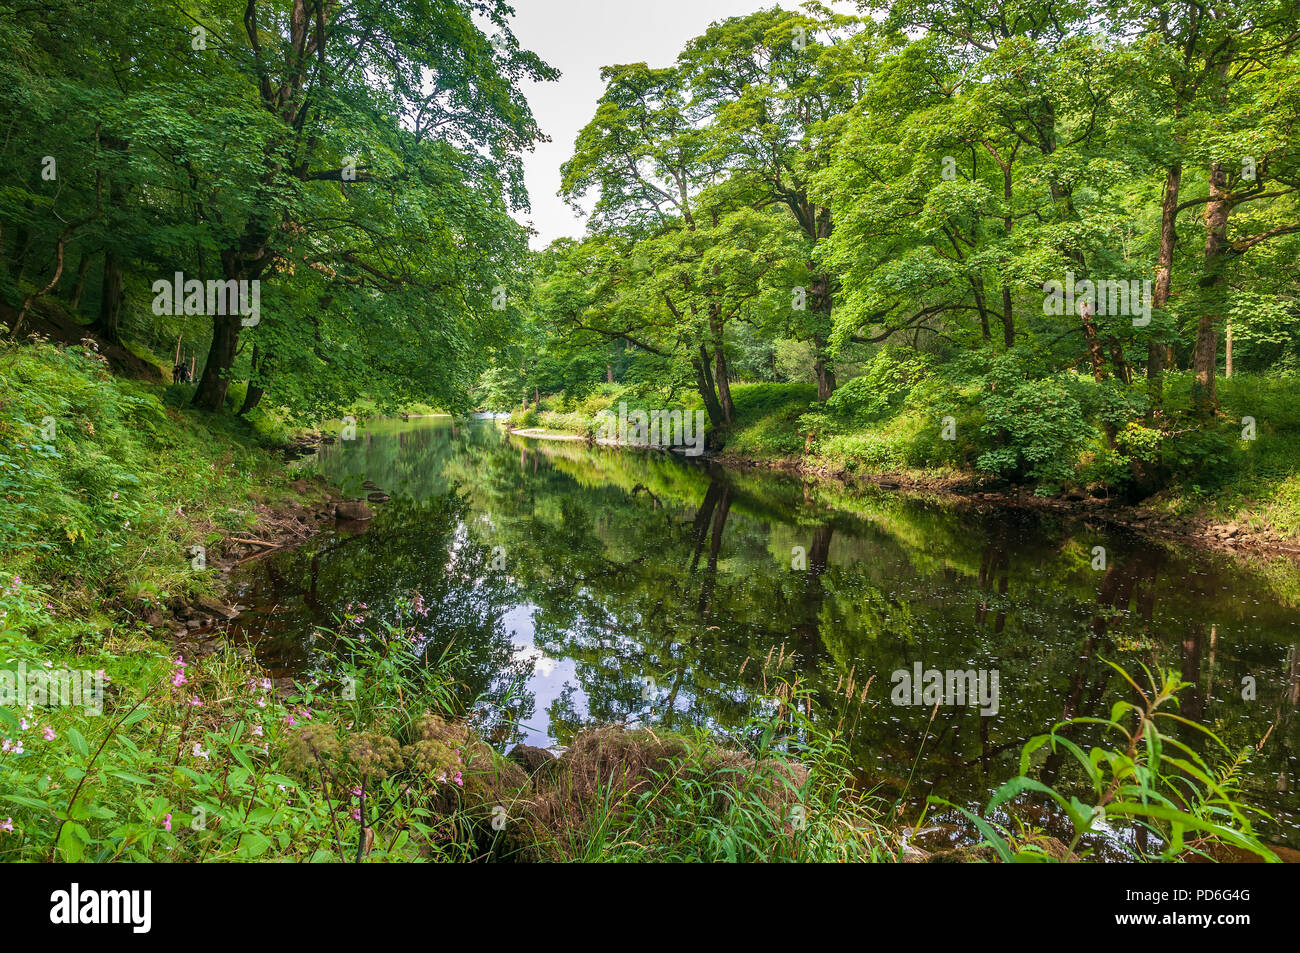 Bolton Abbey. West Yorkshire. River Wharfe. - Stock Image